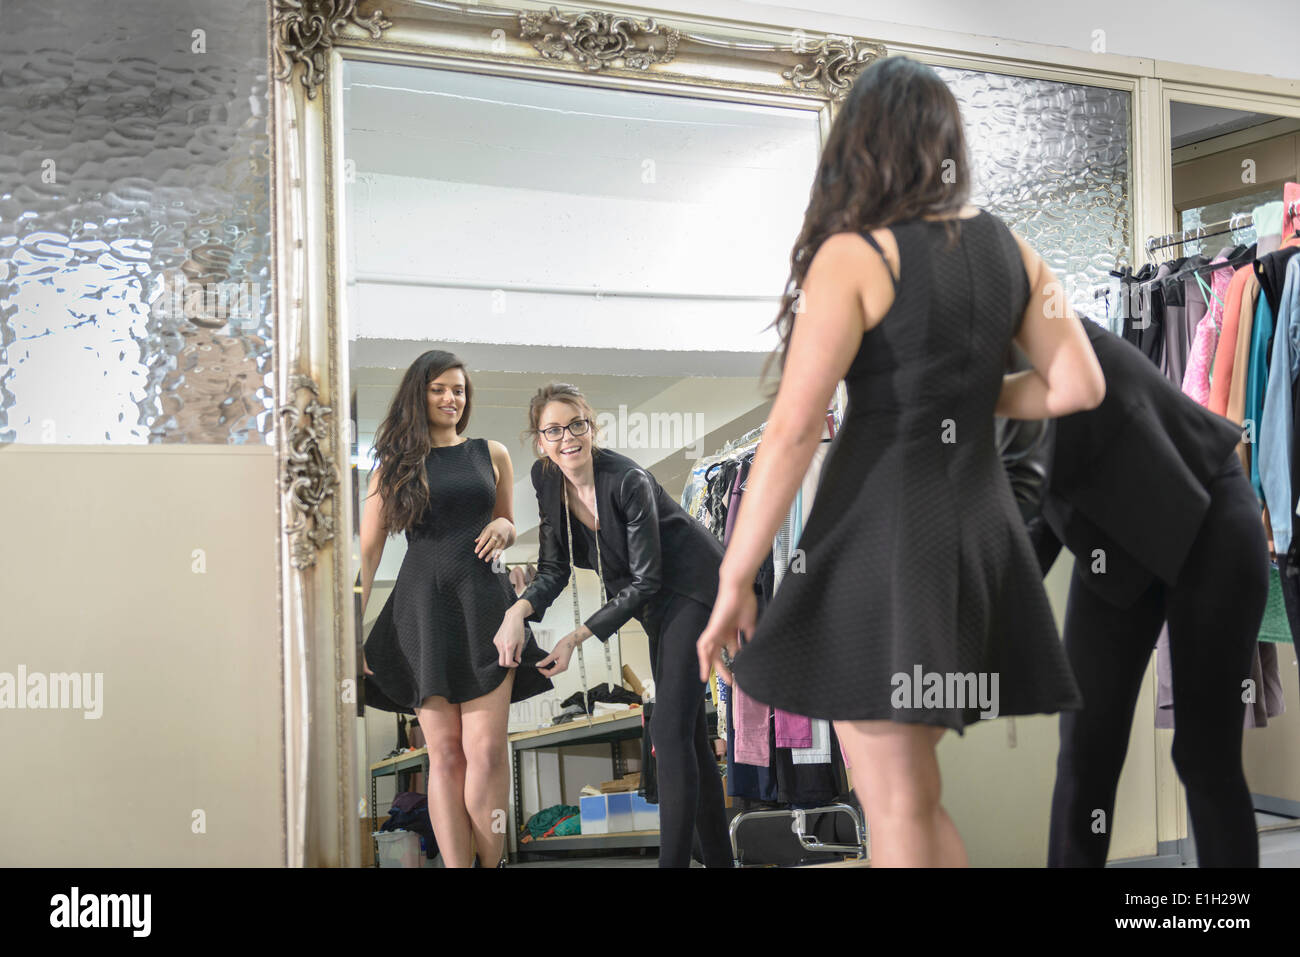 Fashion designers working together in front of mirror in fashion studio - Stock Image